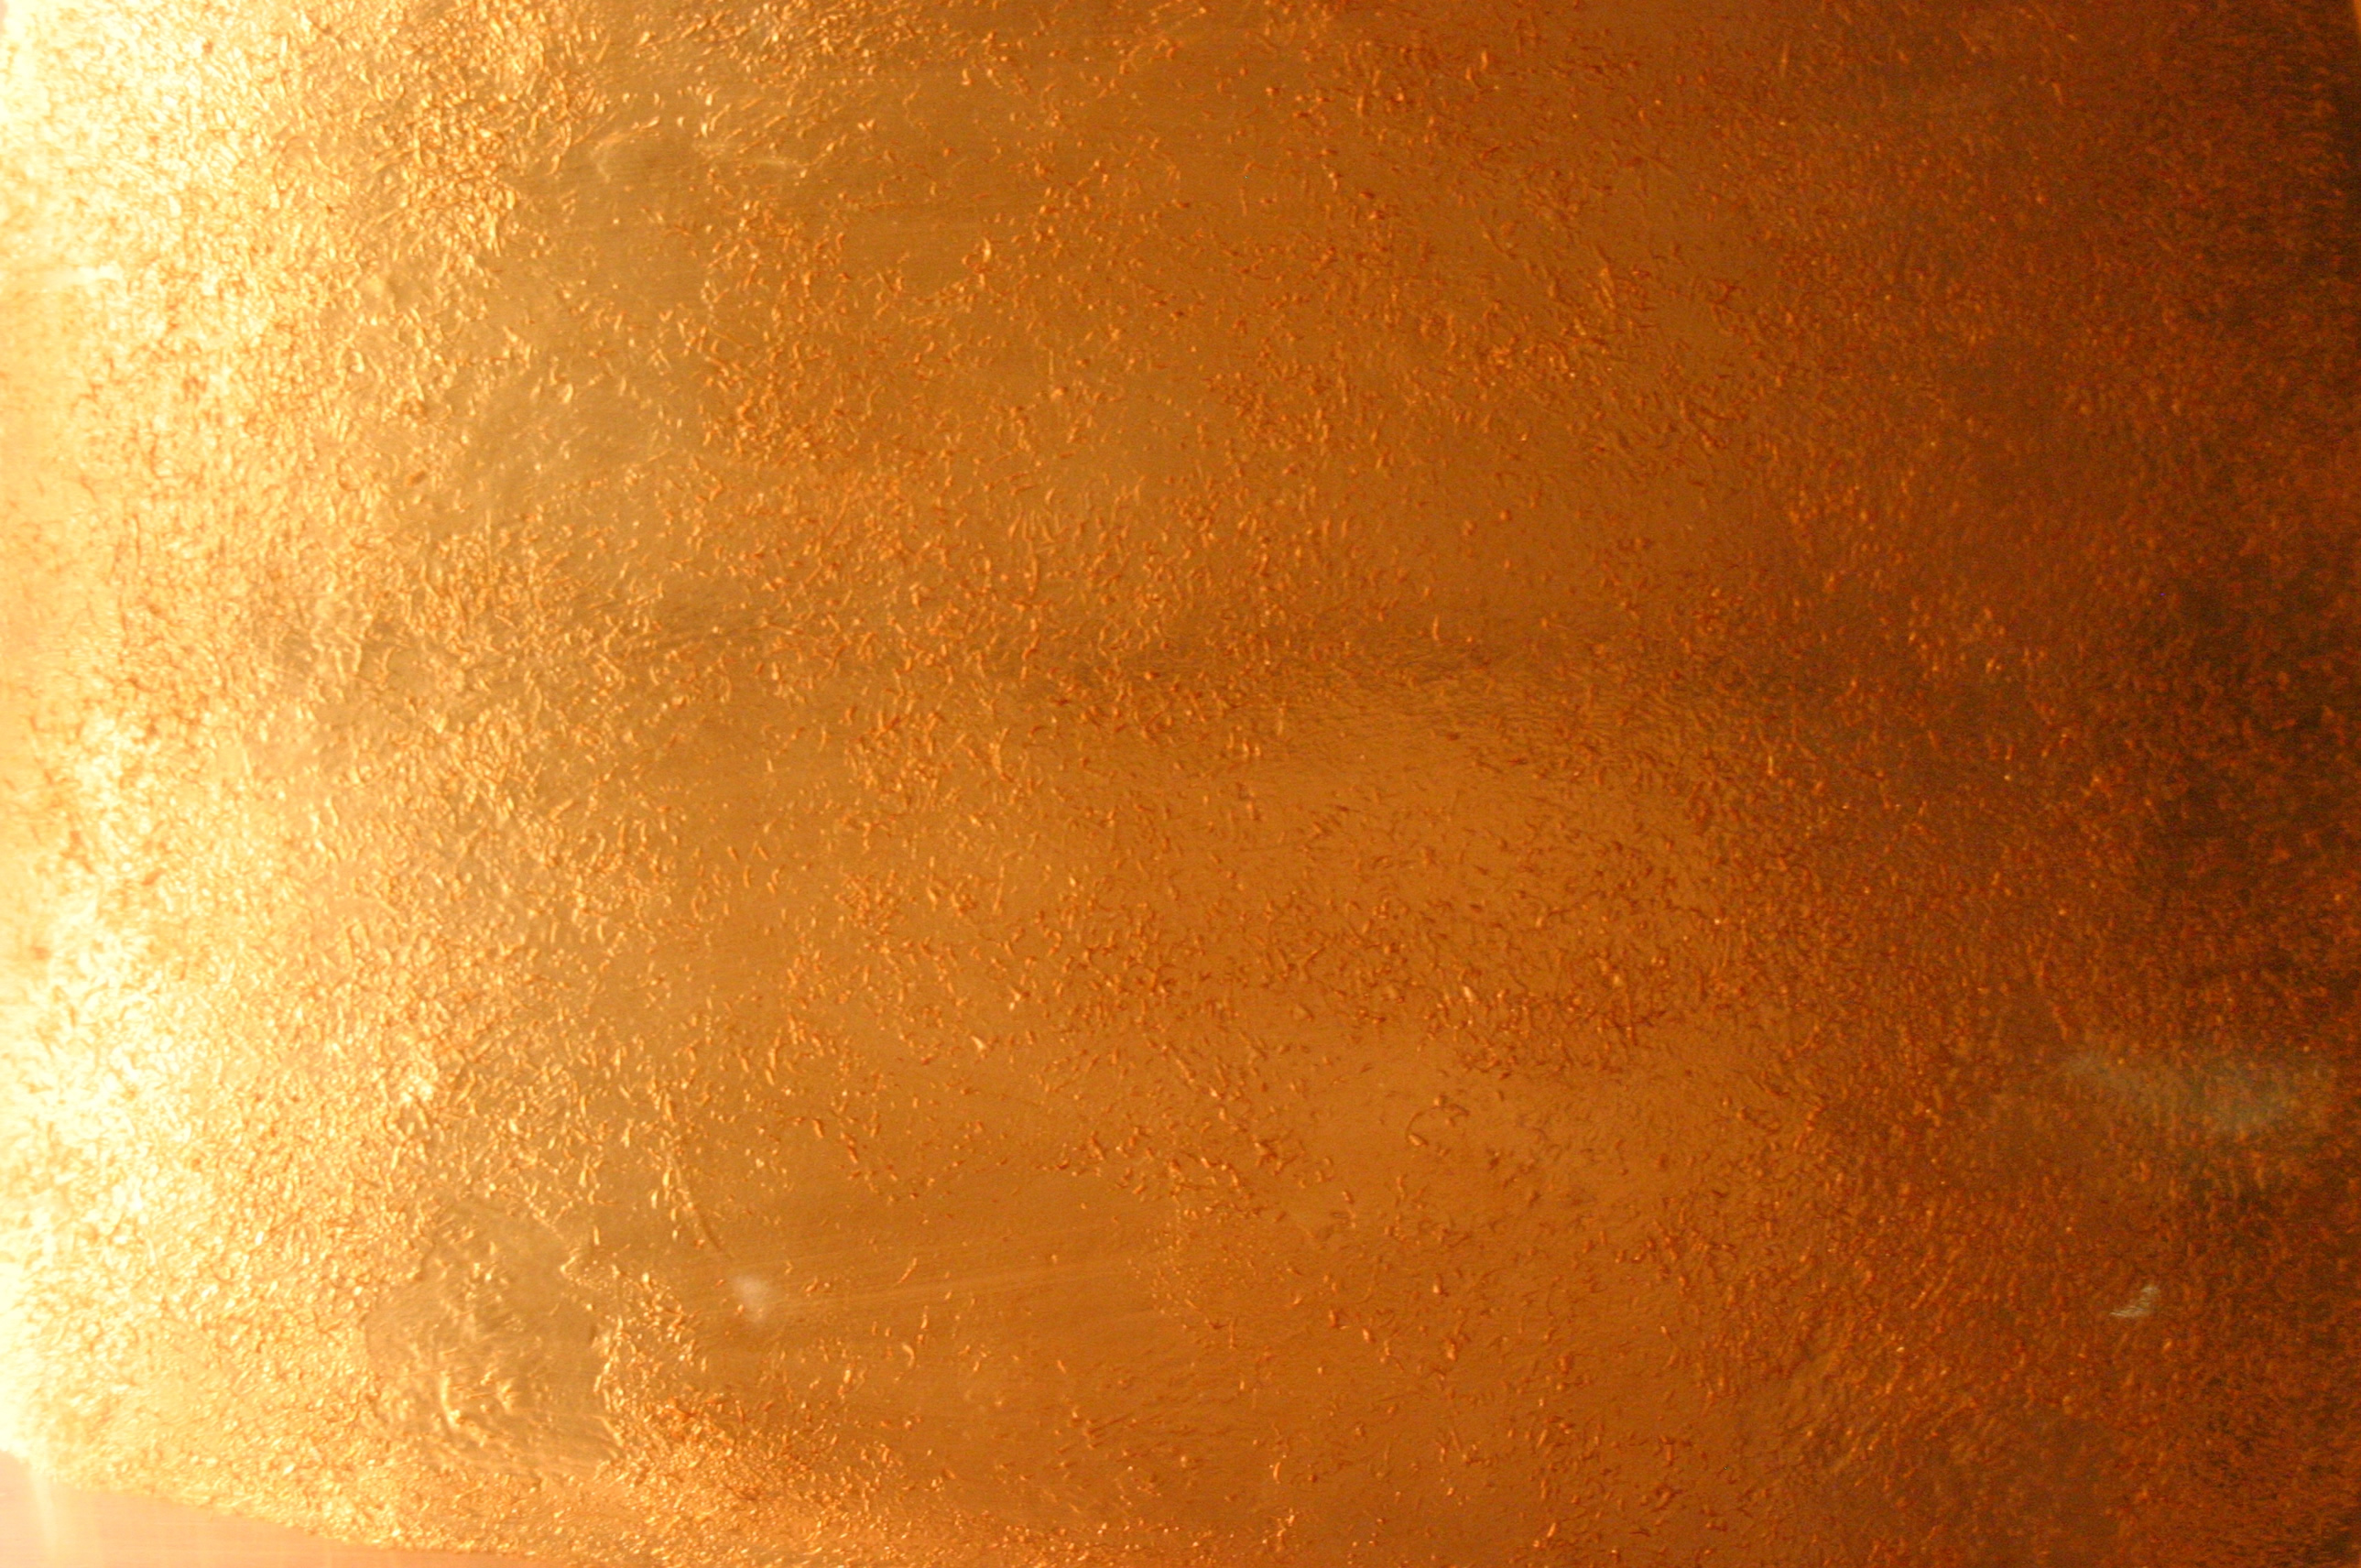 golden ppt texture background